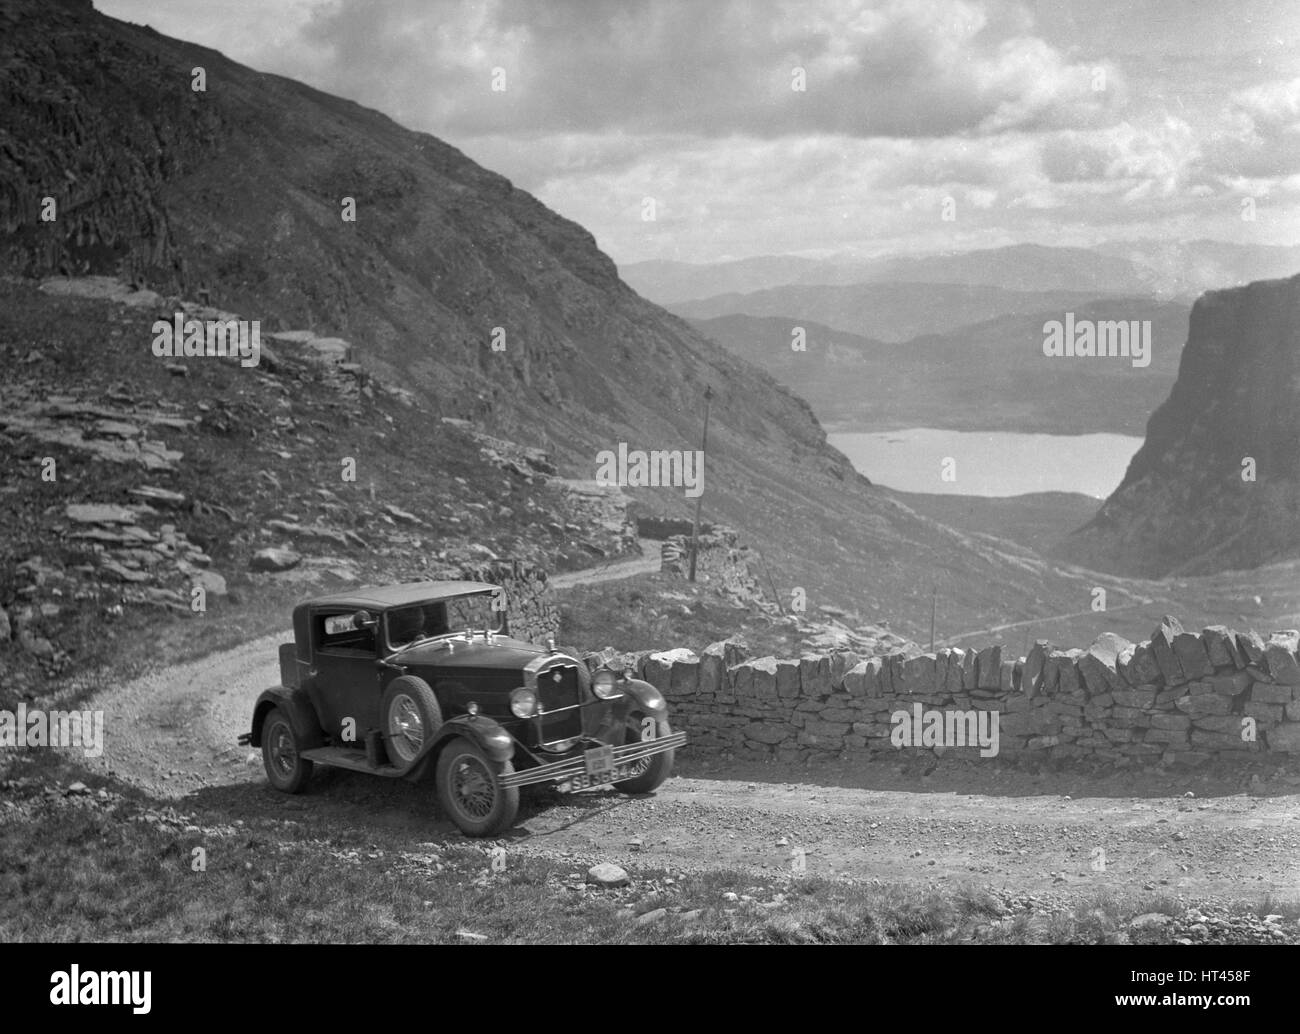 Rover saloon of I Ramsay competing in the RSAC Scottish Rally, 1936. Artist: Bill Brunell. - Stock Image